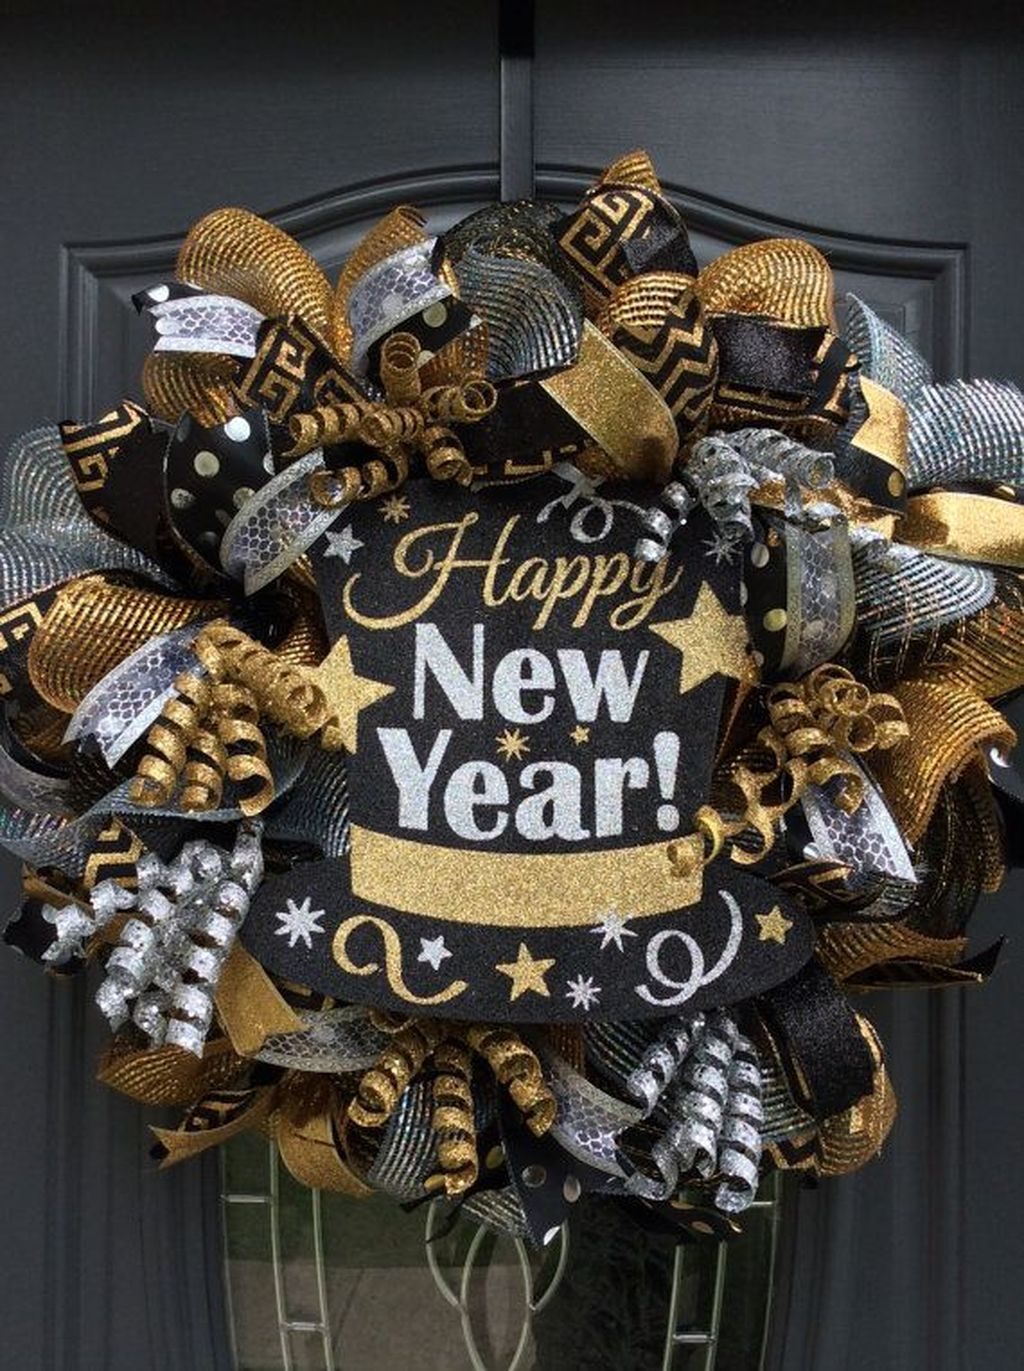 30+ Best New Years Eve Decor Ideas For Home Decor in 2020